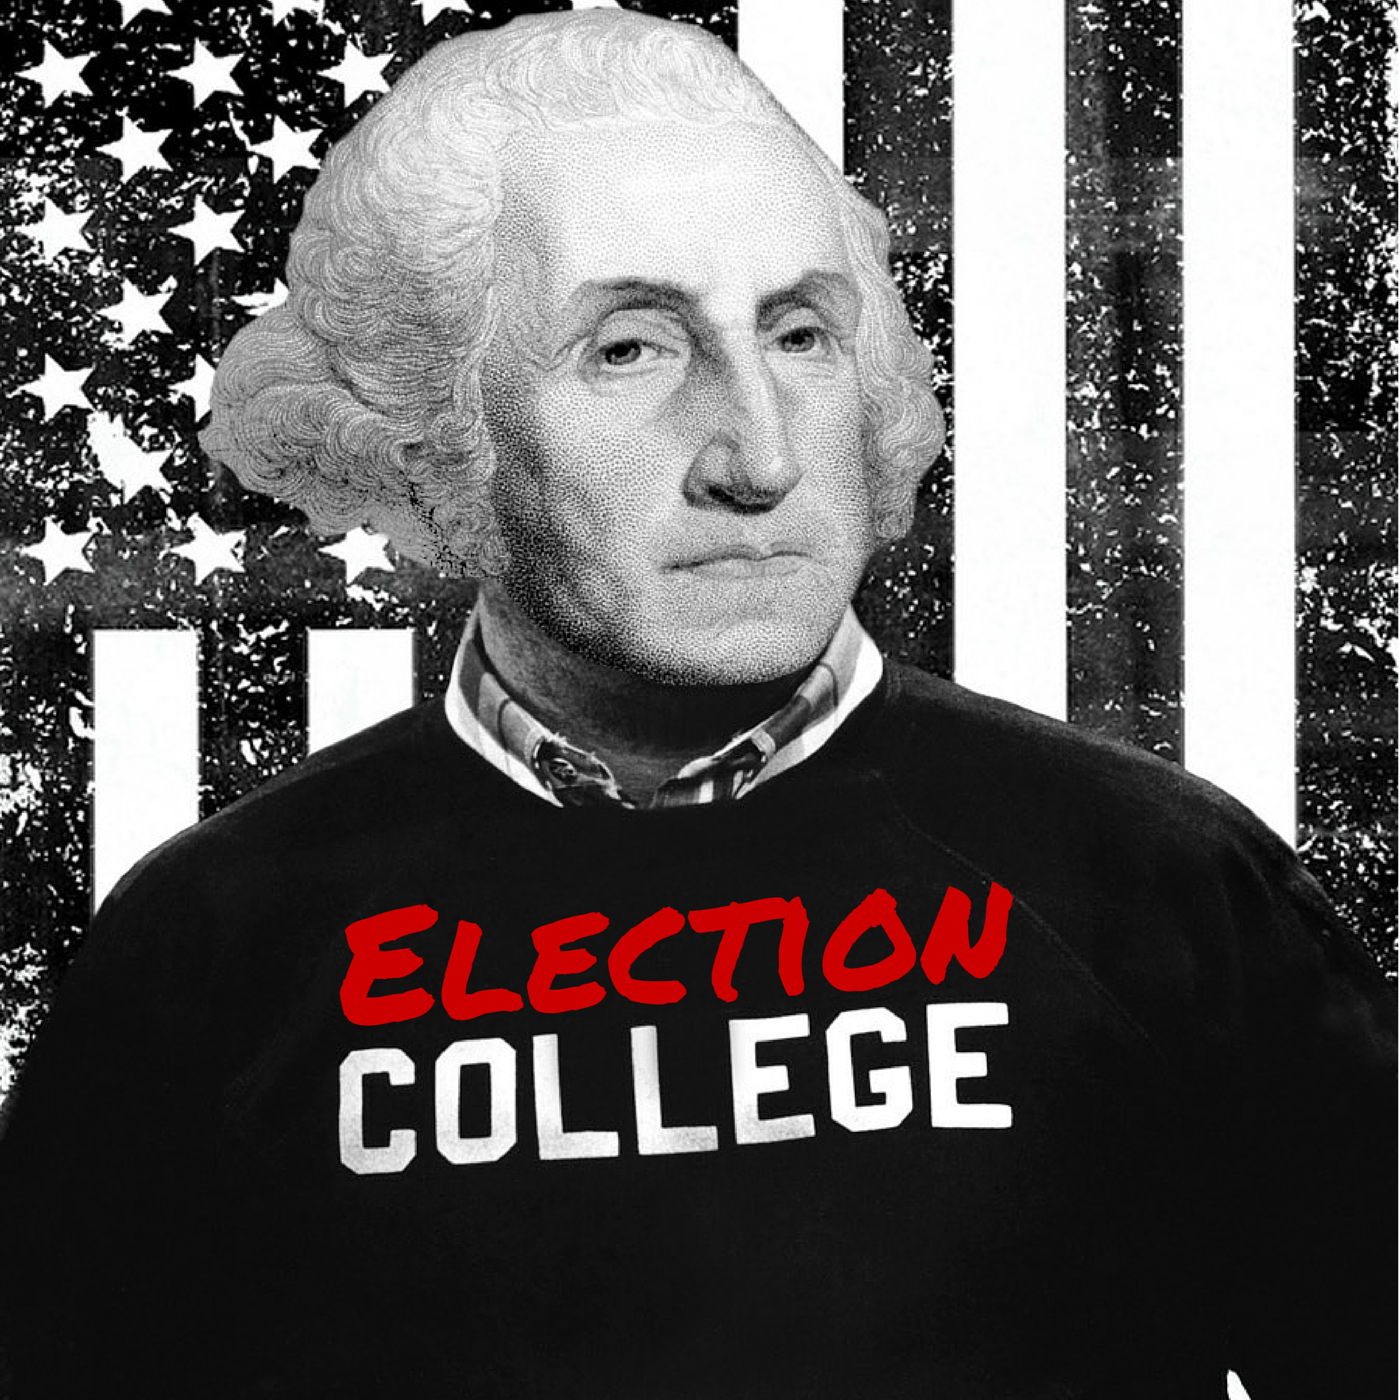 Schuyler Colfax | Episode #164 | Election College: United States Presidential Election History